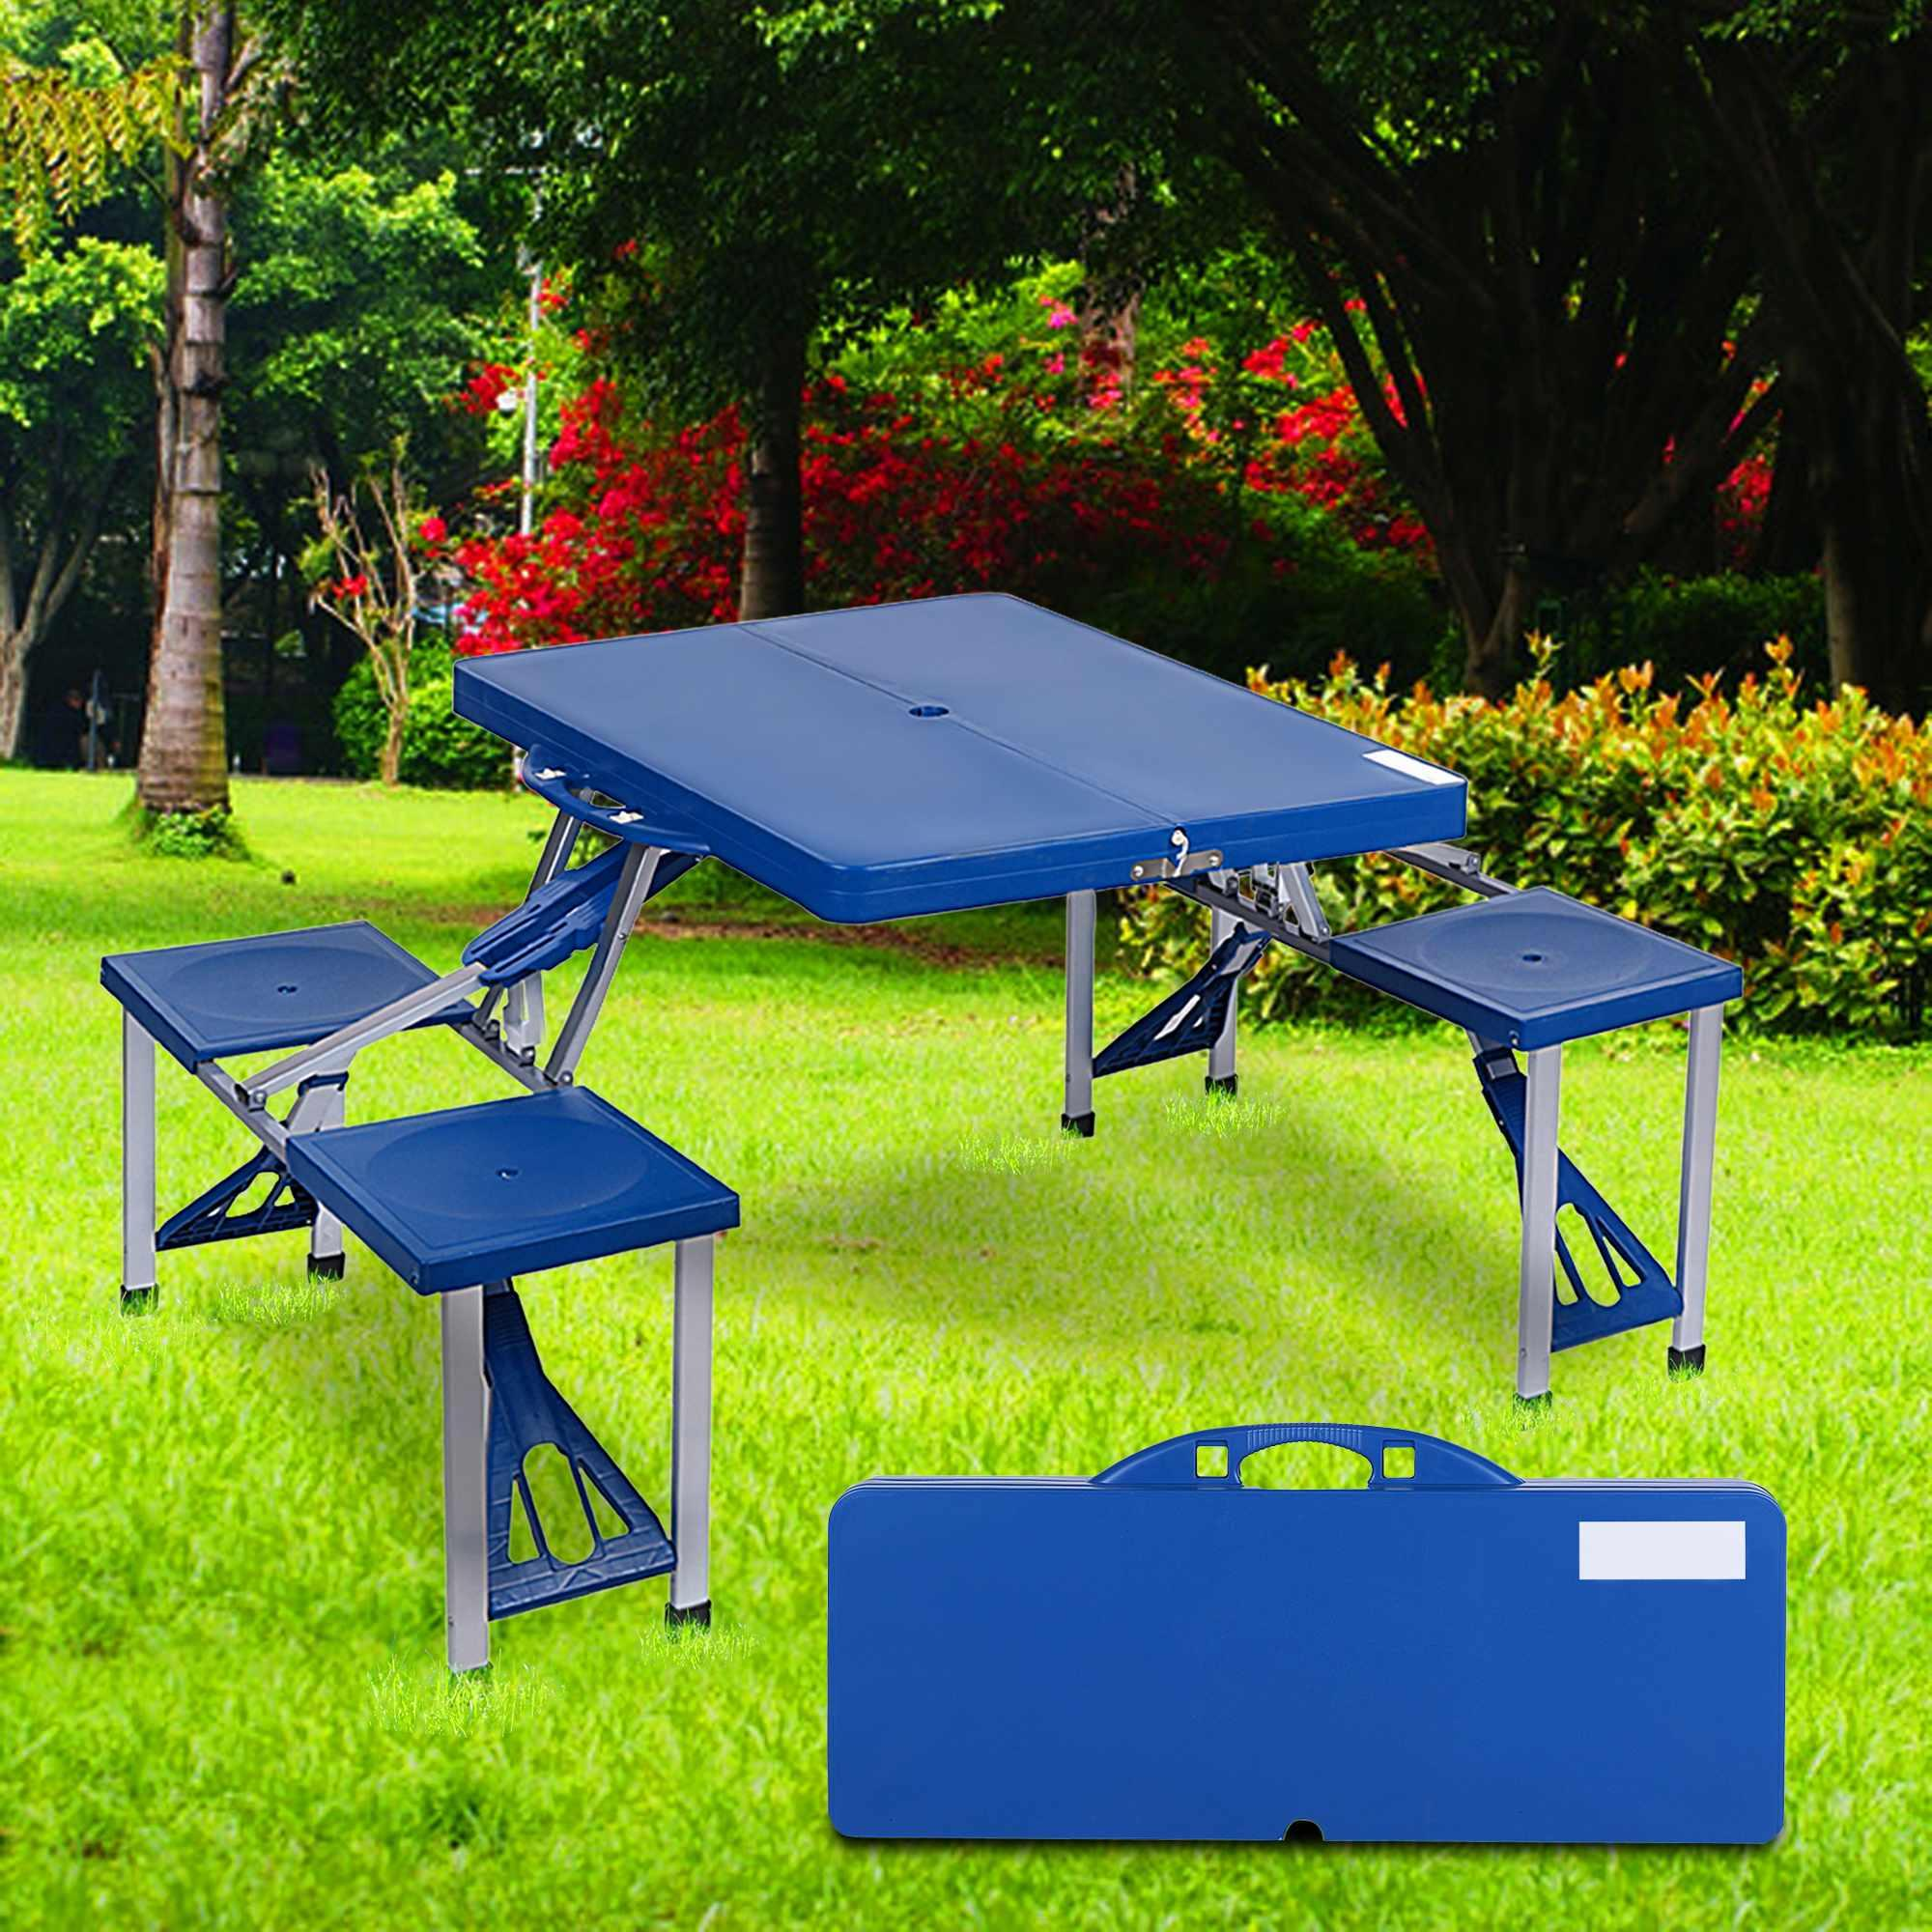 Portable Folding Outdoor Camp Suitcase Picnic Table with 4 Seats 4